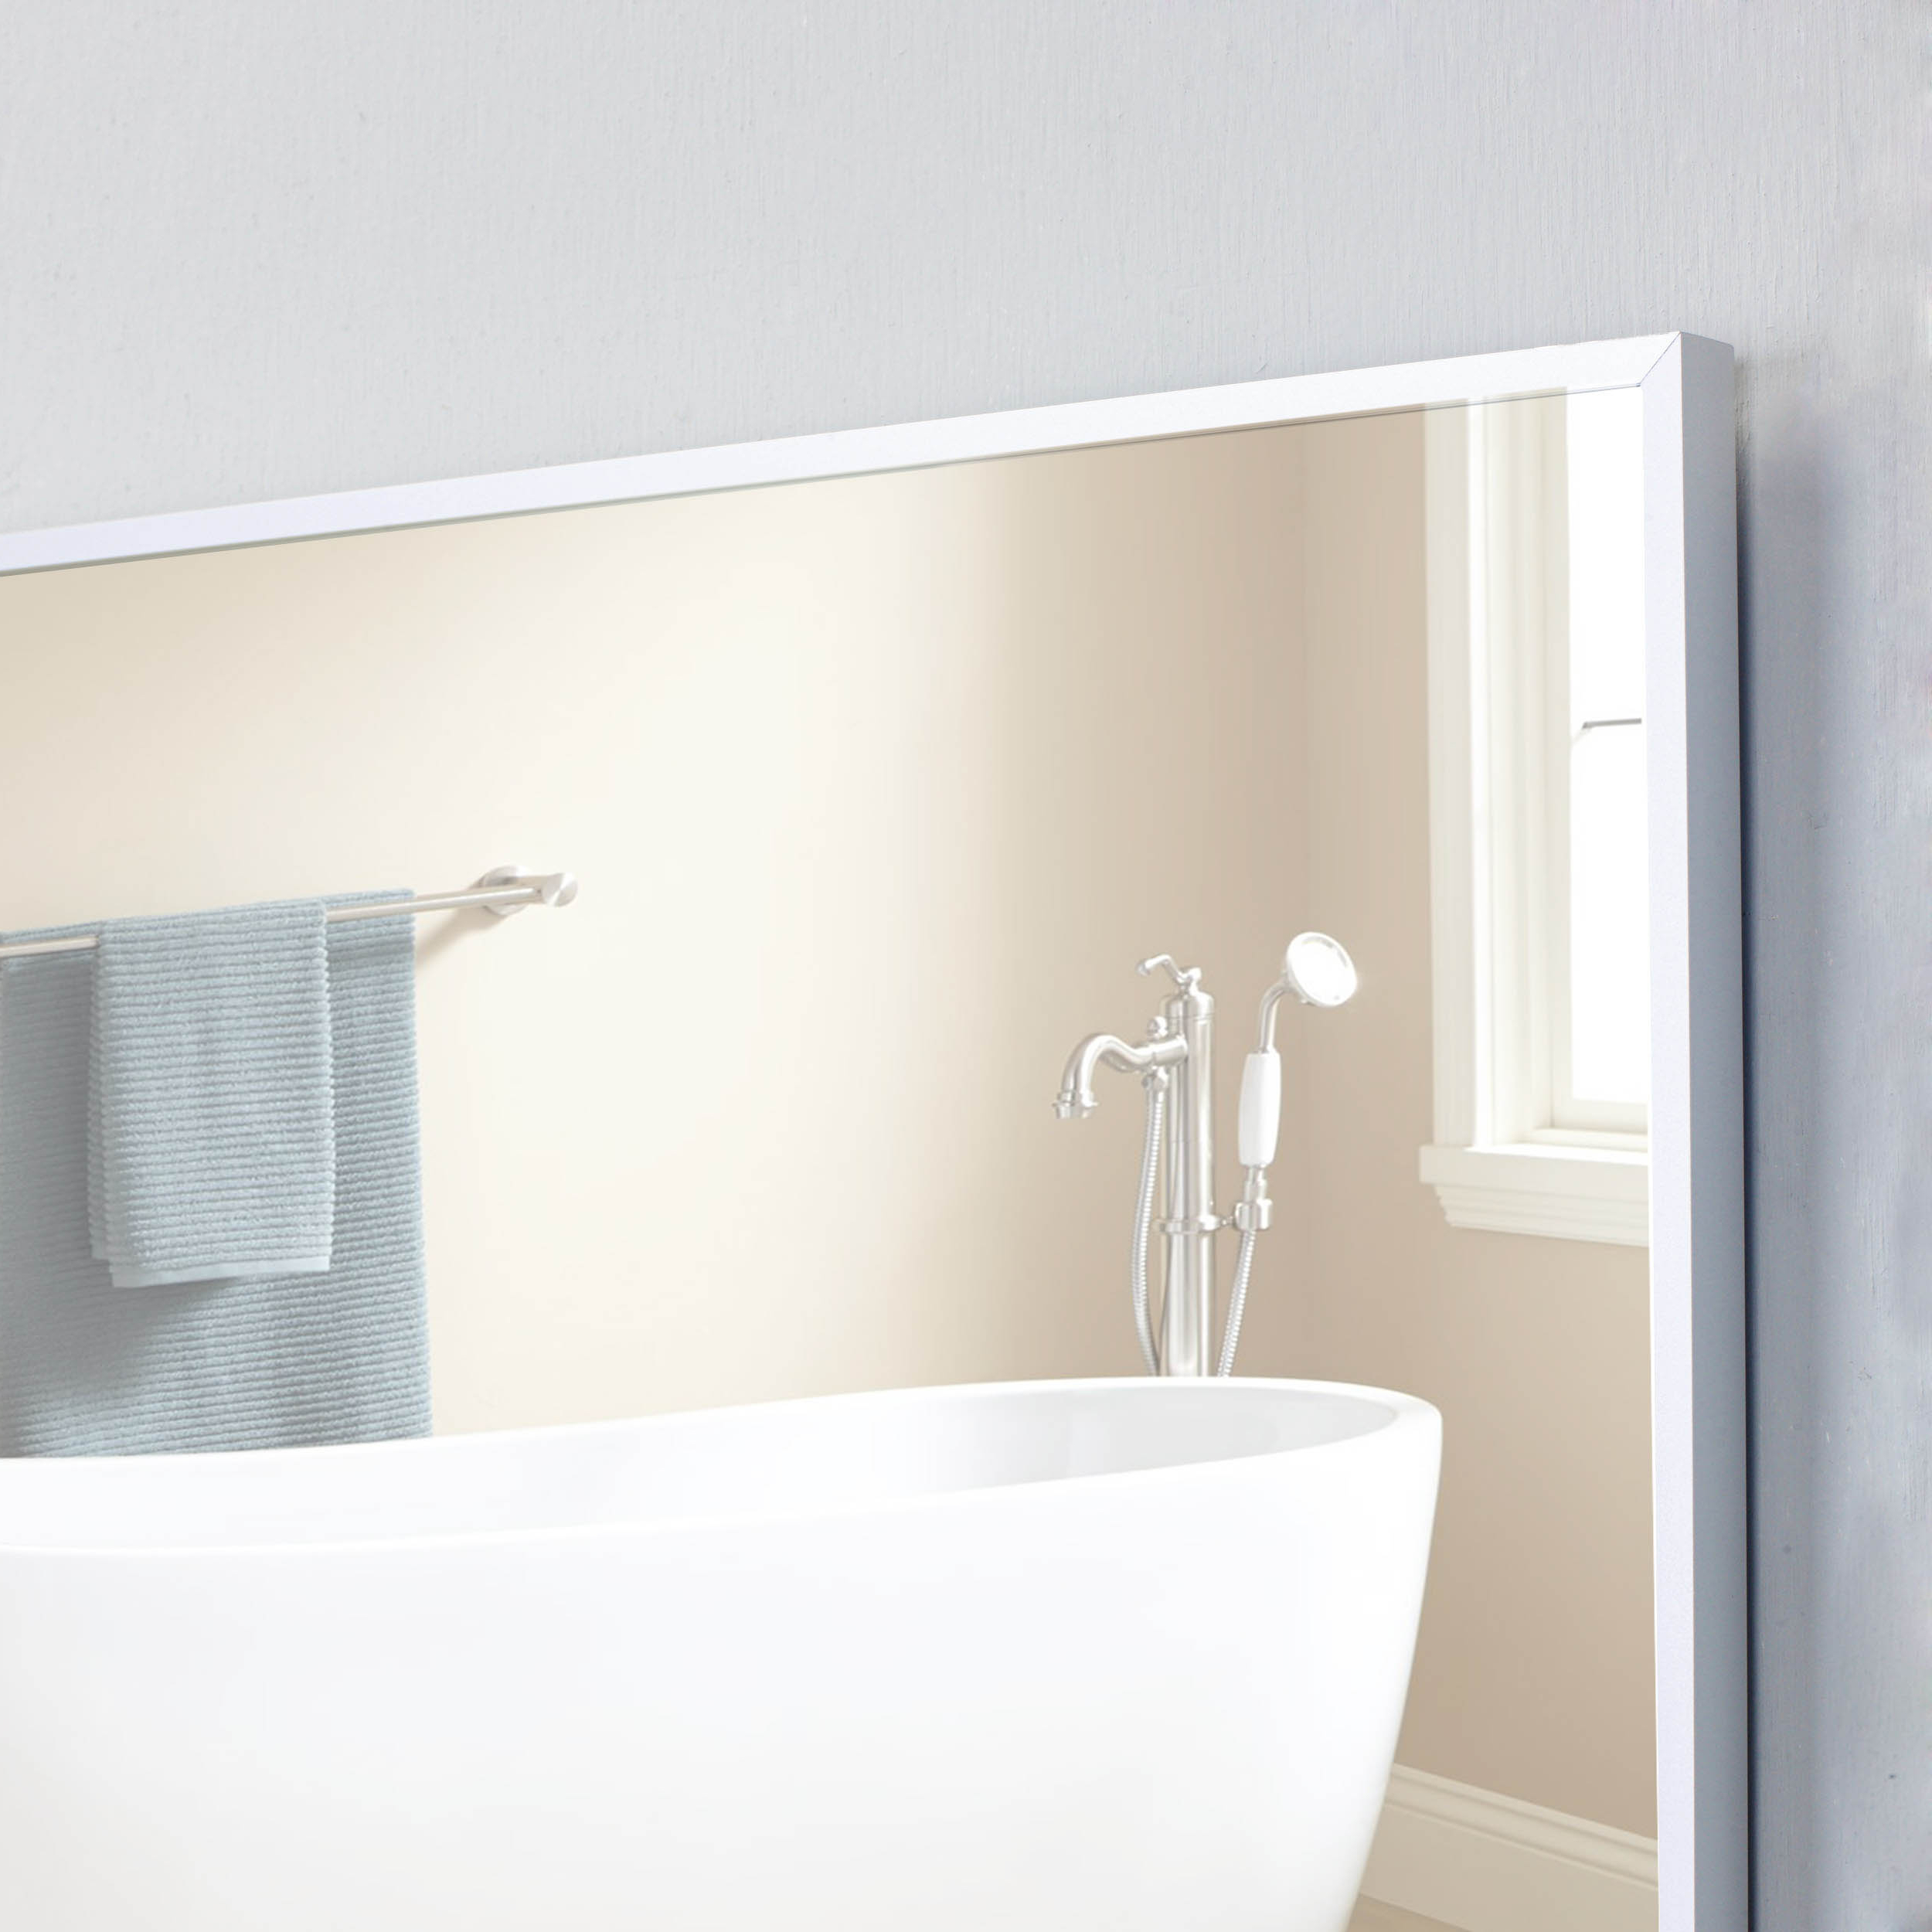 "Recent Frame Bathroom Wall Mirrors Regarding Eviva Sax 30"" Brushed Metal Frame Bathroom Wall Mirror (View 12 of 20)"